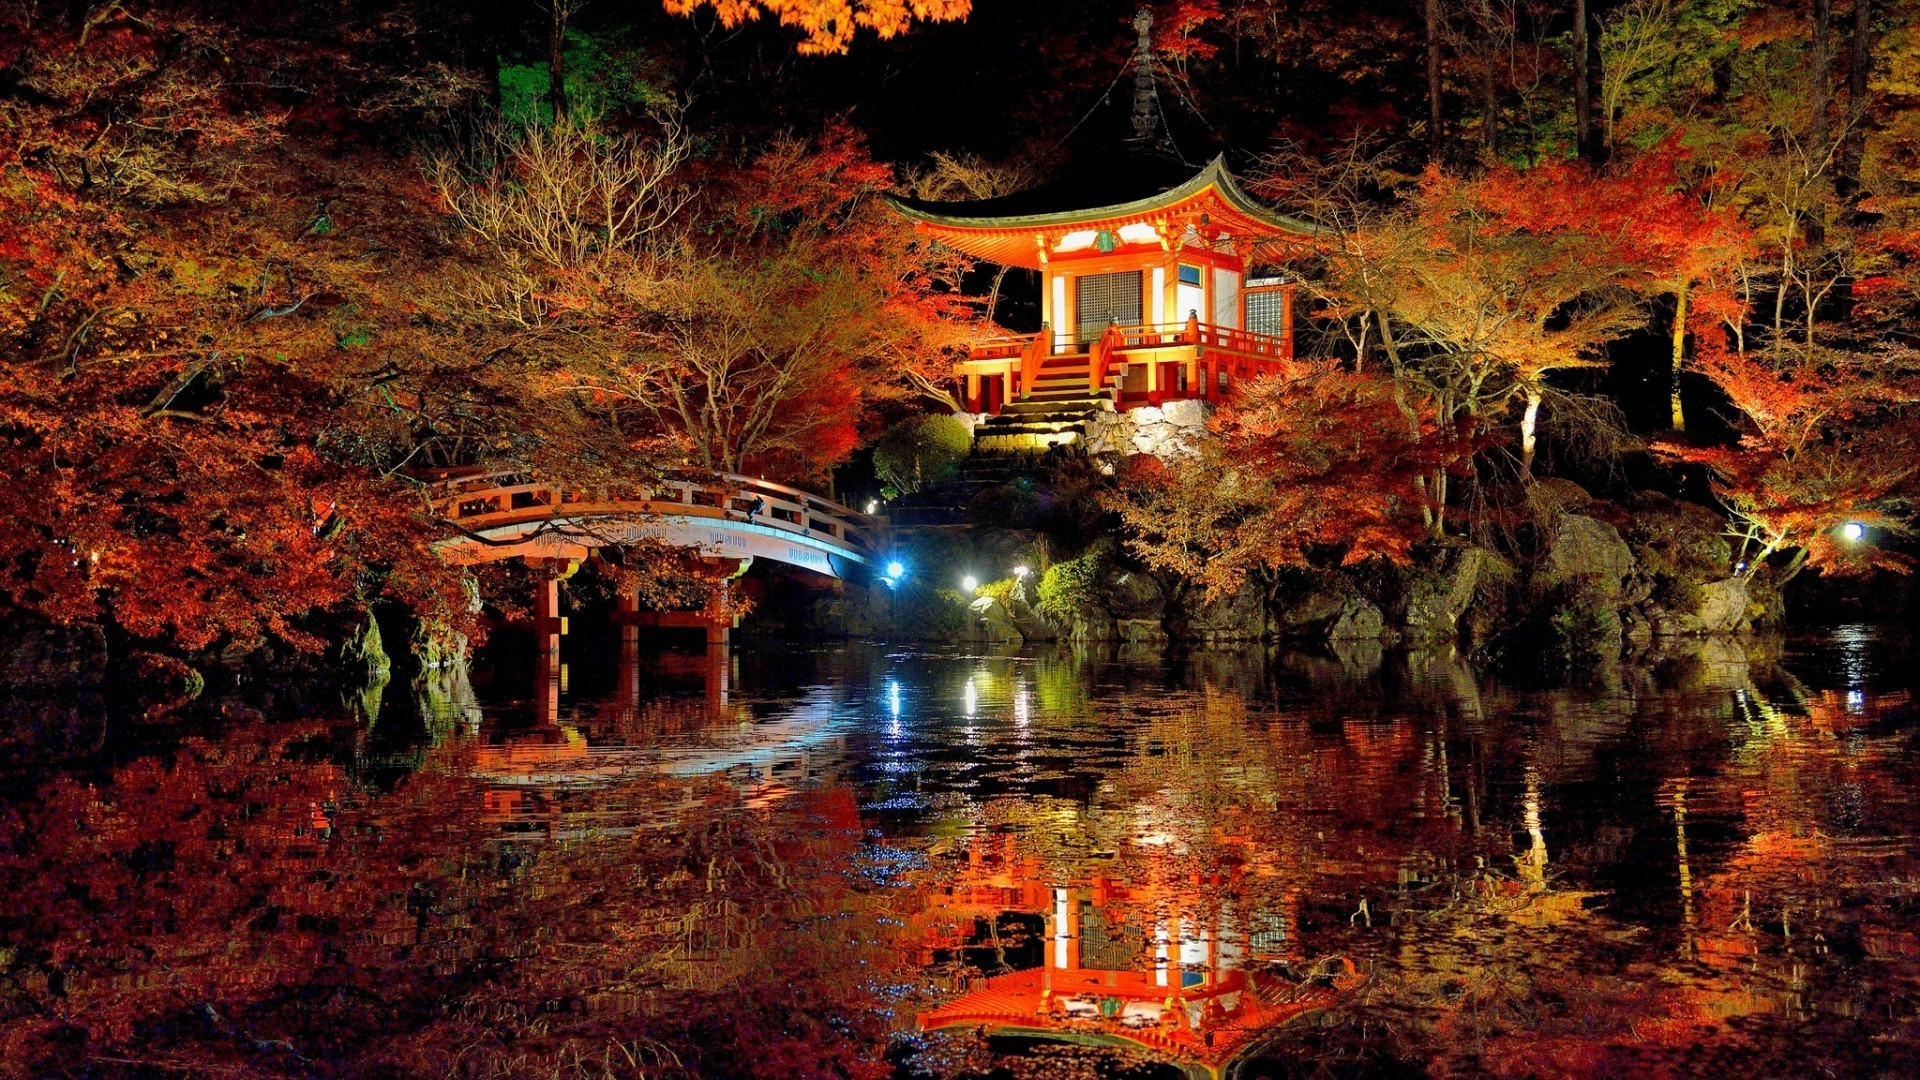 Res: 1920x1080, nature, Trees, Forest, Leaves, Fall, Branch, Japan, Bridge, Night, Asian  Architecture, Lights, Lake, Water, Rock, Reflection, Stairs Wallpapers HD /  Desktop ...